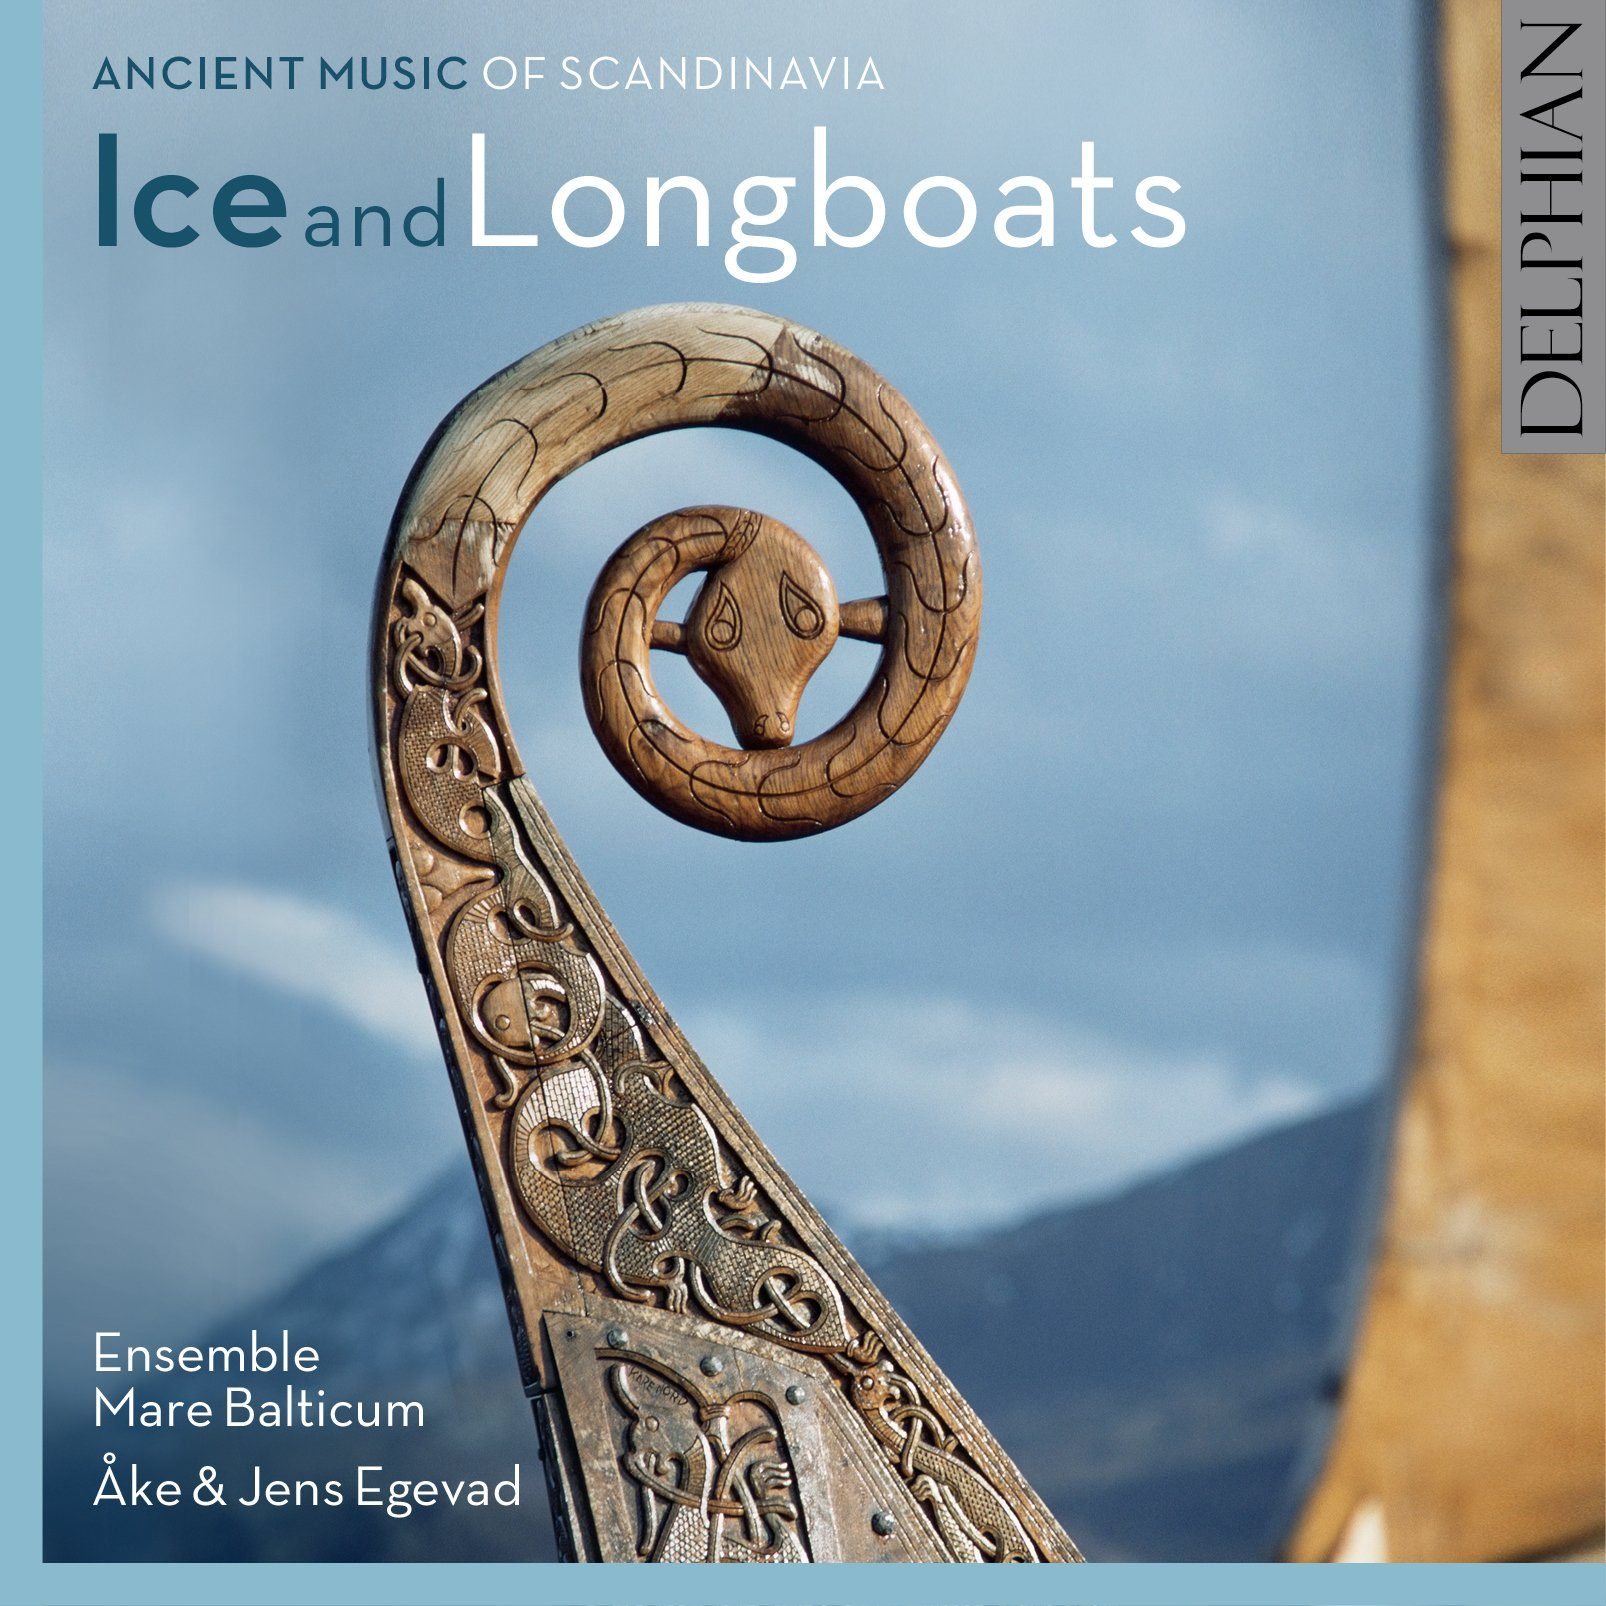 Ice and Longboats: ancient music of Scandinavia CD Delphian Records